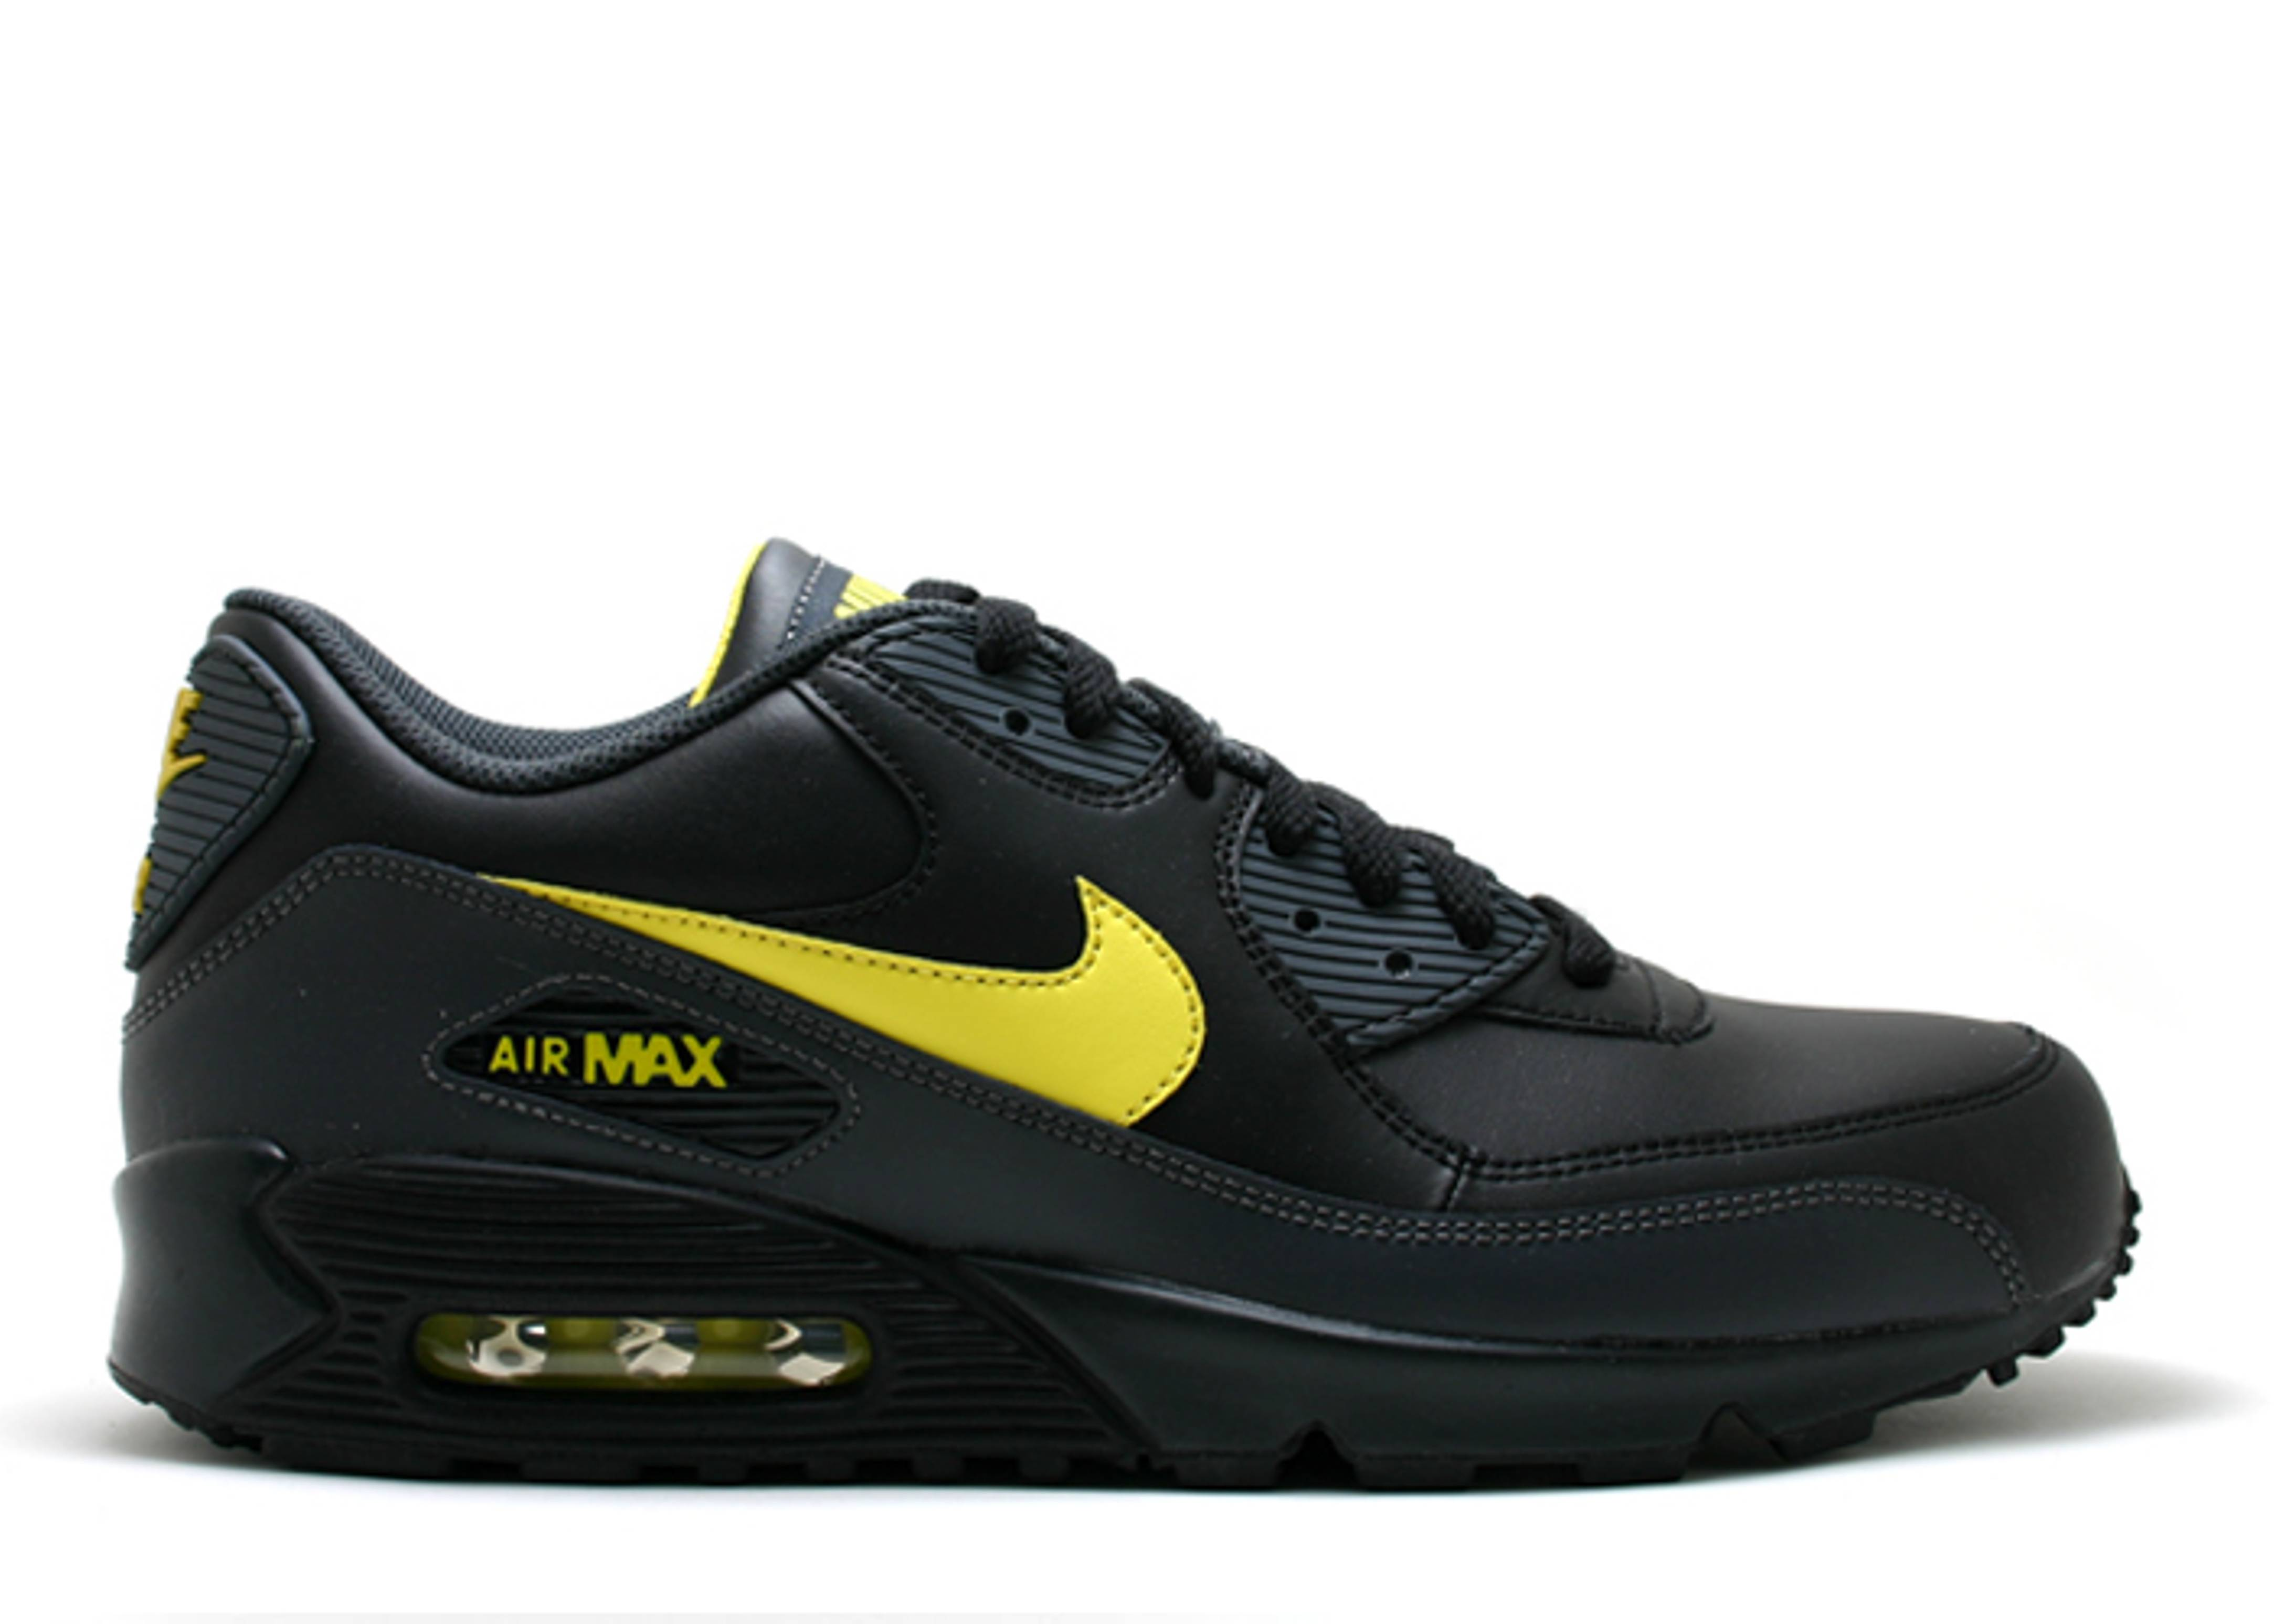 super popular a44fd e5f46 Air Max 90 Leather - Nike - 302519 073 - black zest-anthracite   Flight Club